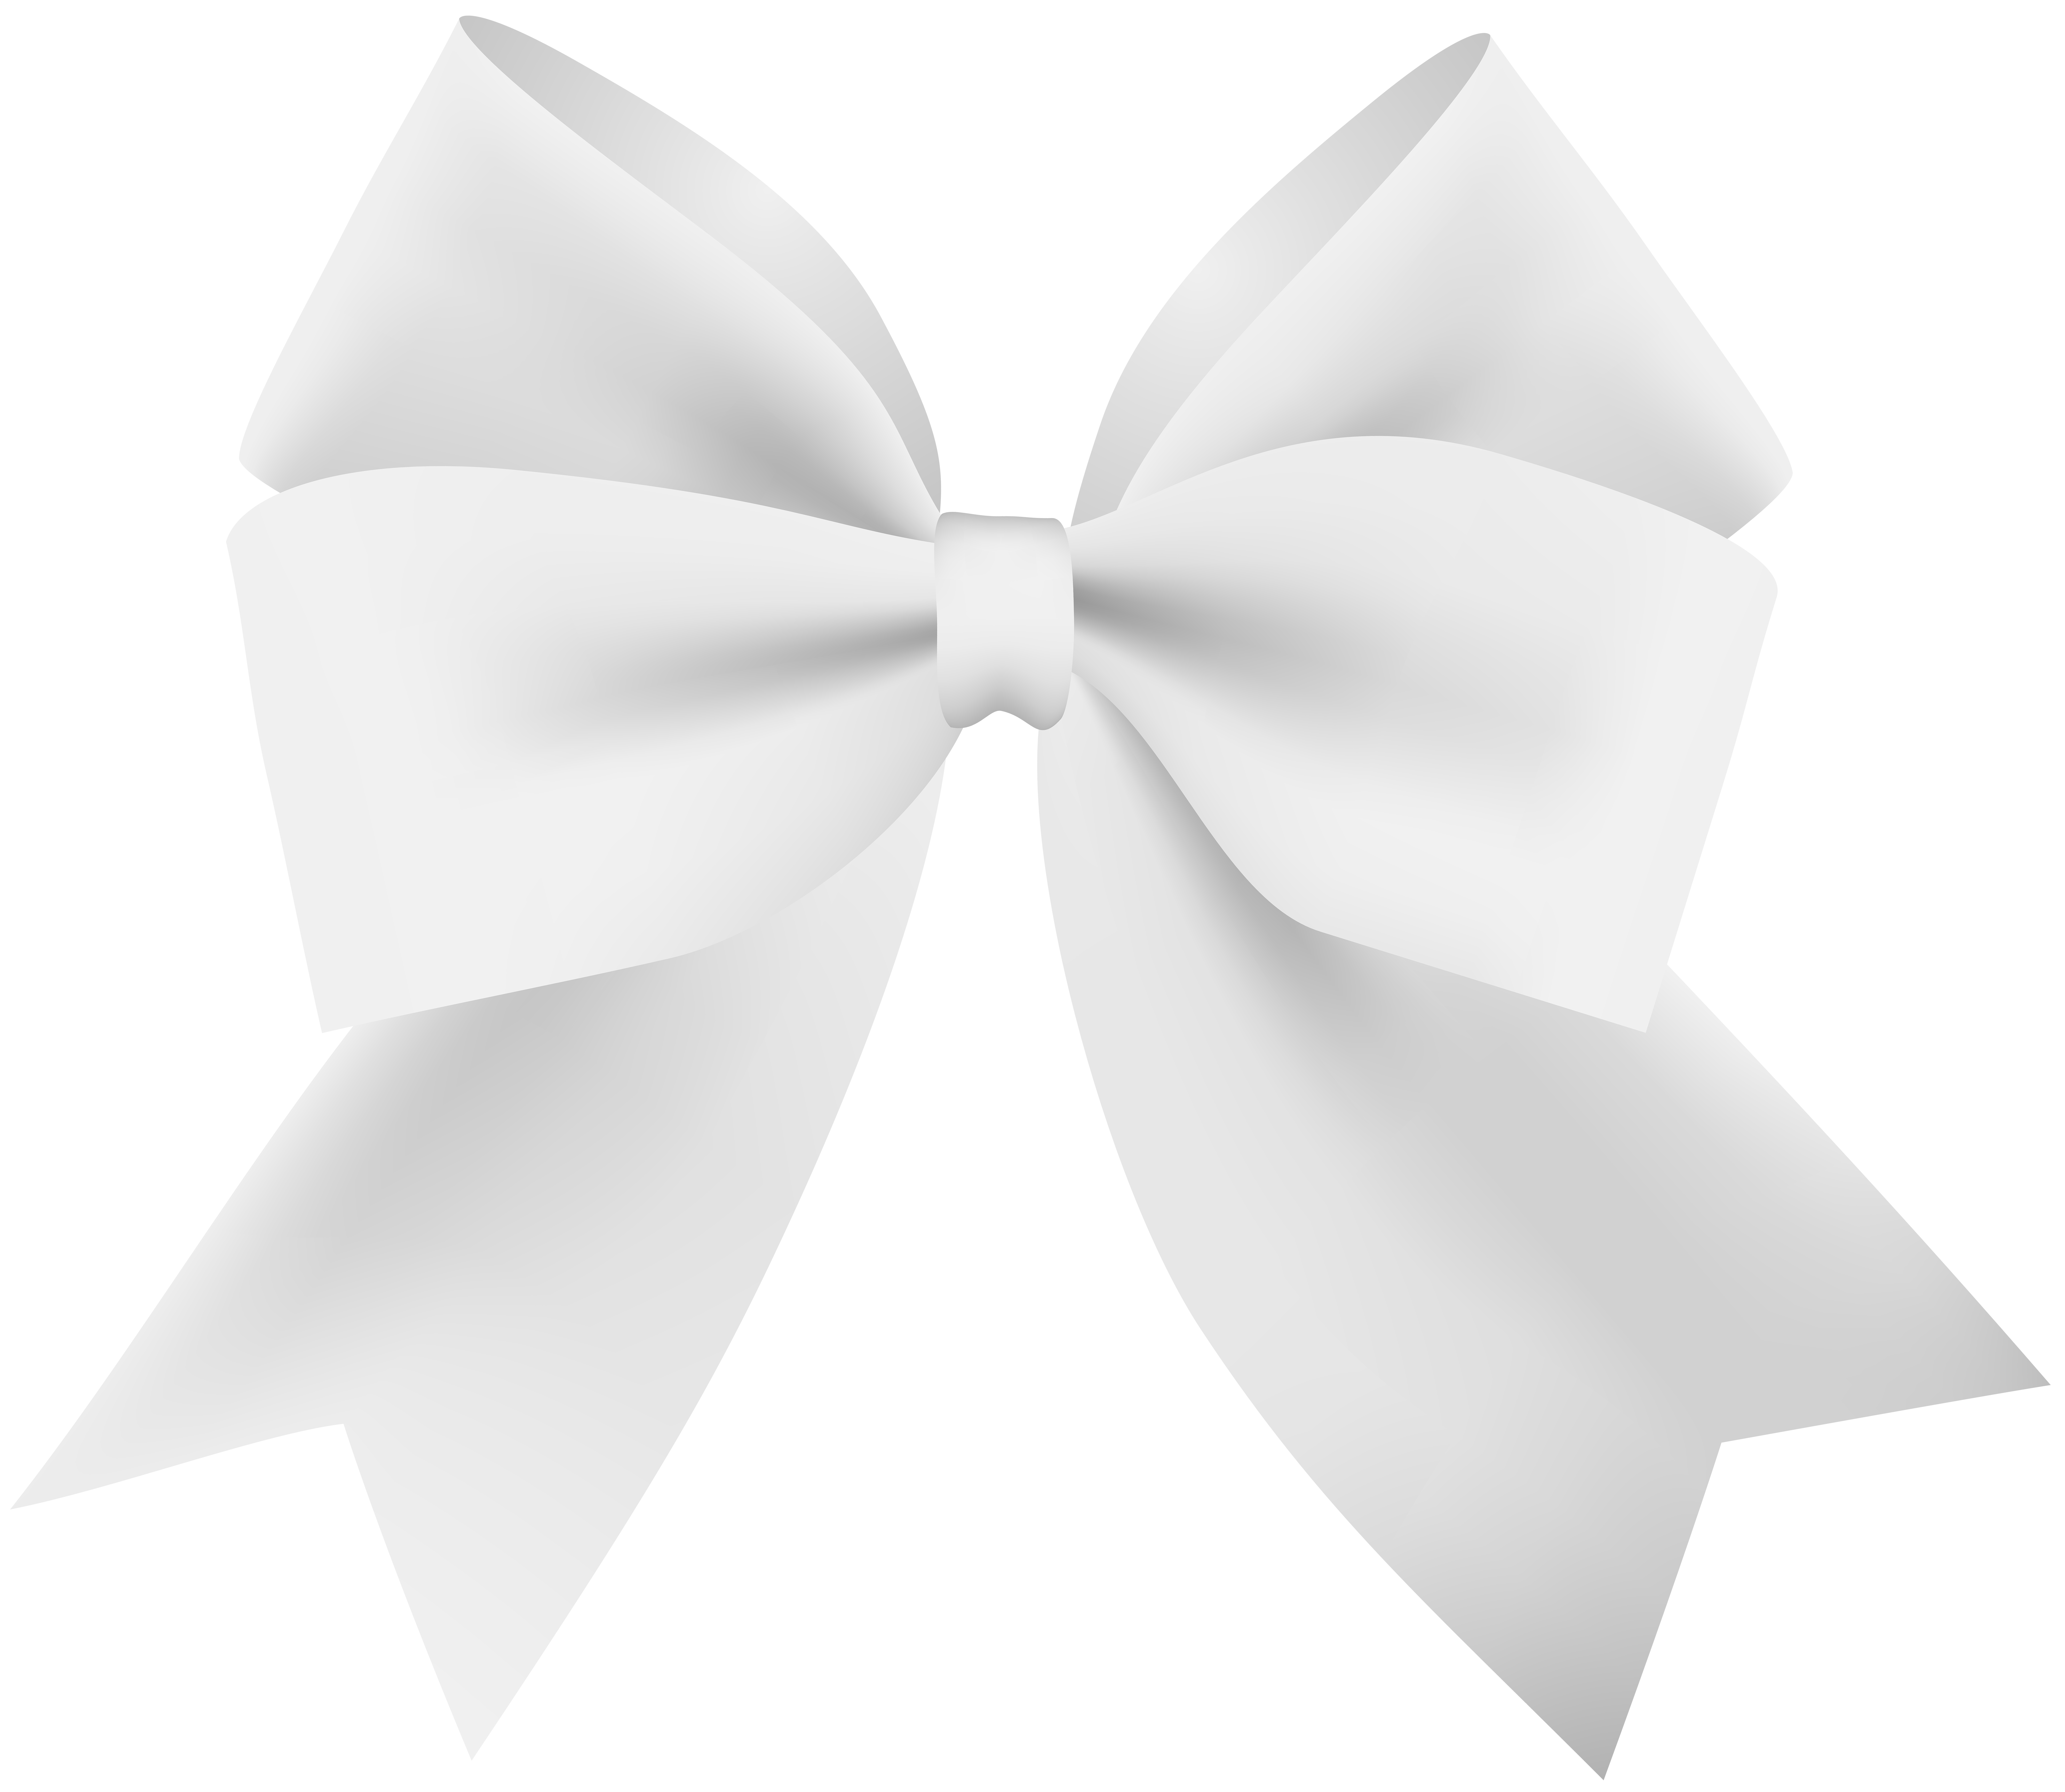 White Bow Transparent PNG Image.